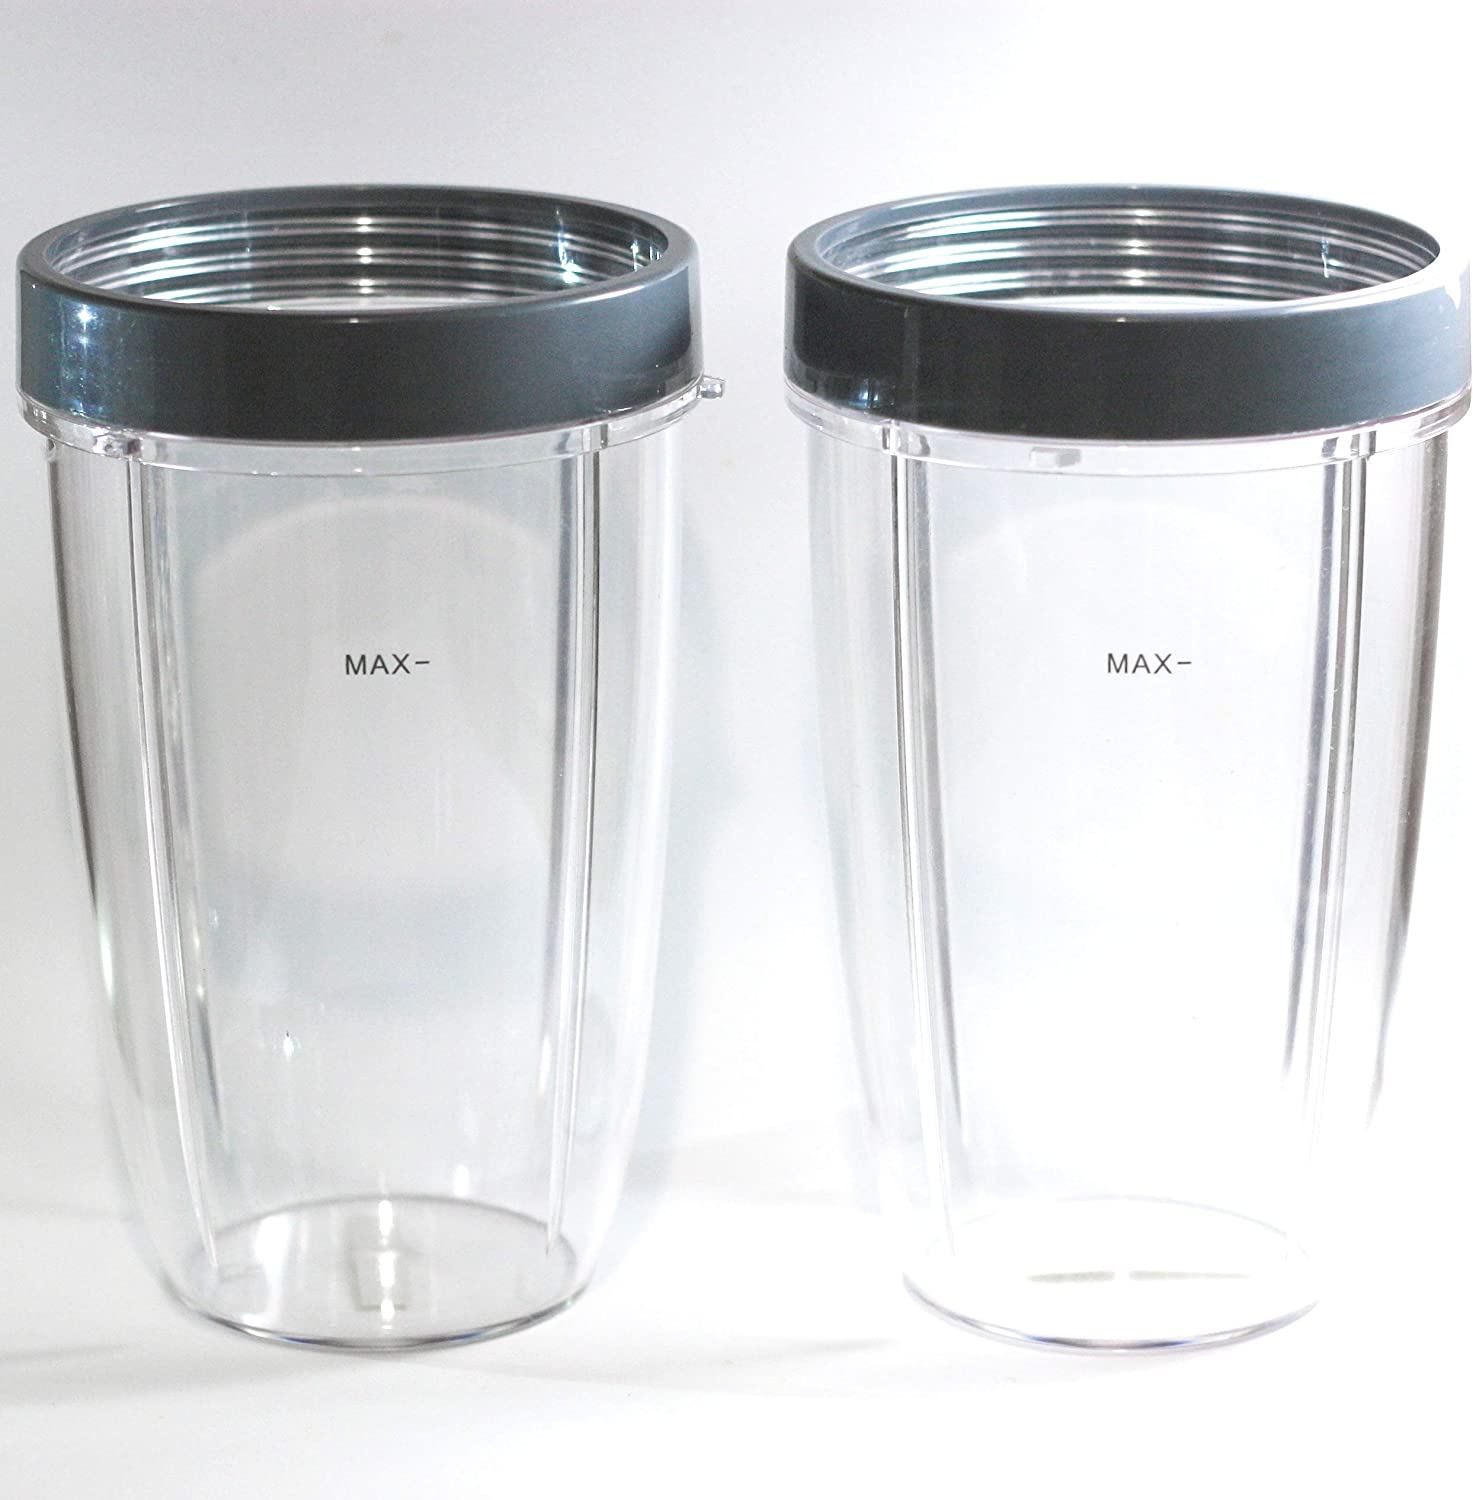 Set of cups 24 oz. with lip ring from 2pcs. Suitable for Nutribullet 600w and 900w. Medium blender cup.